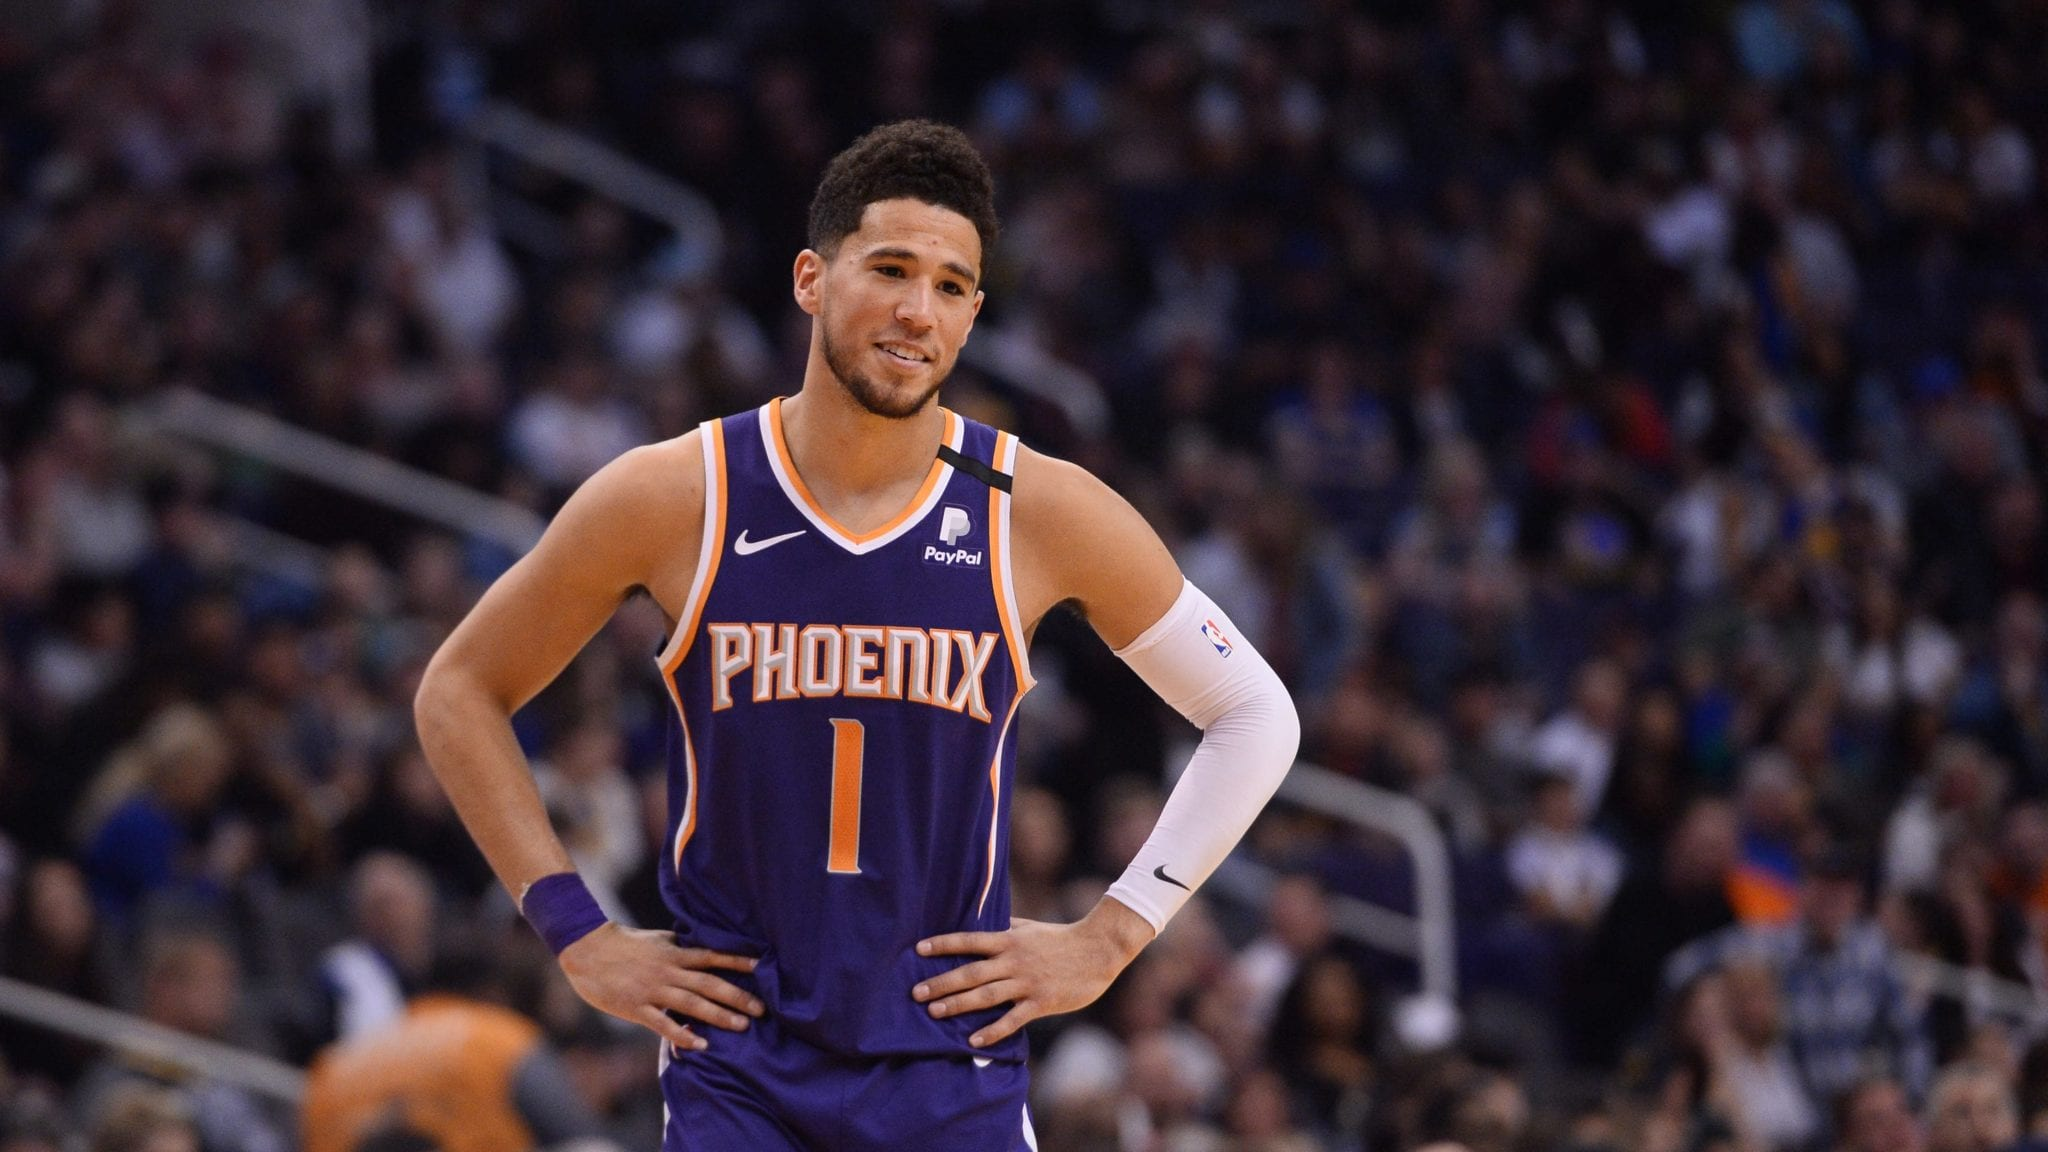 Devin Booker of the Suns